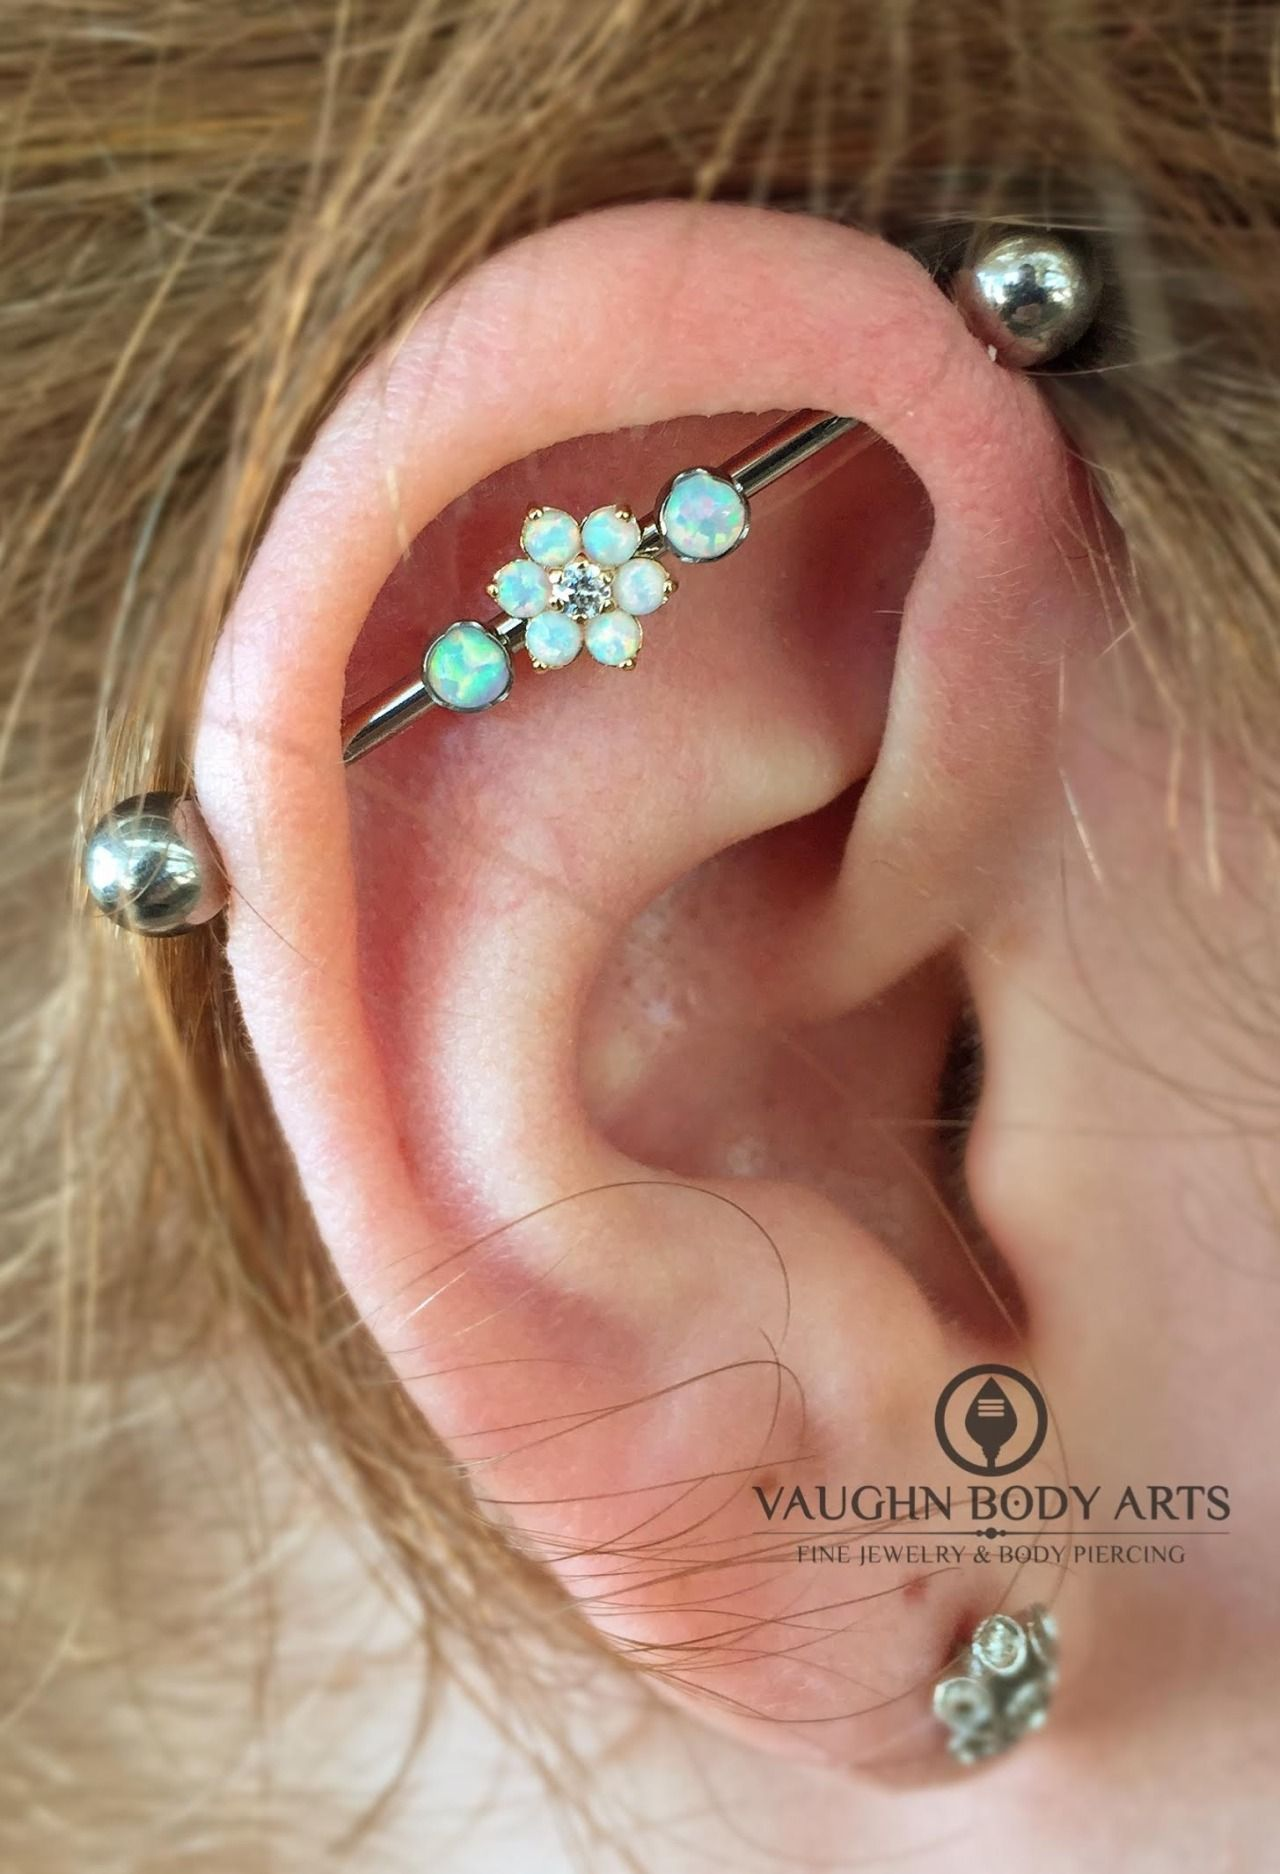 Belly piercing 2018  Implant grade titanium barbell with three holes drilled in the shaft